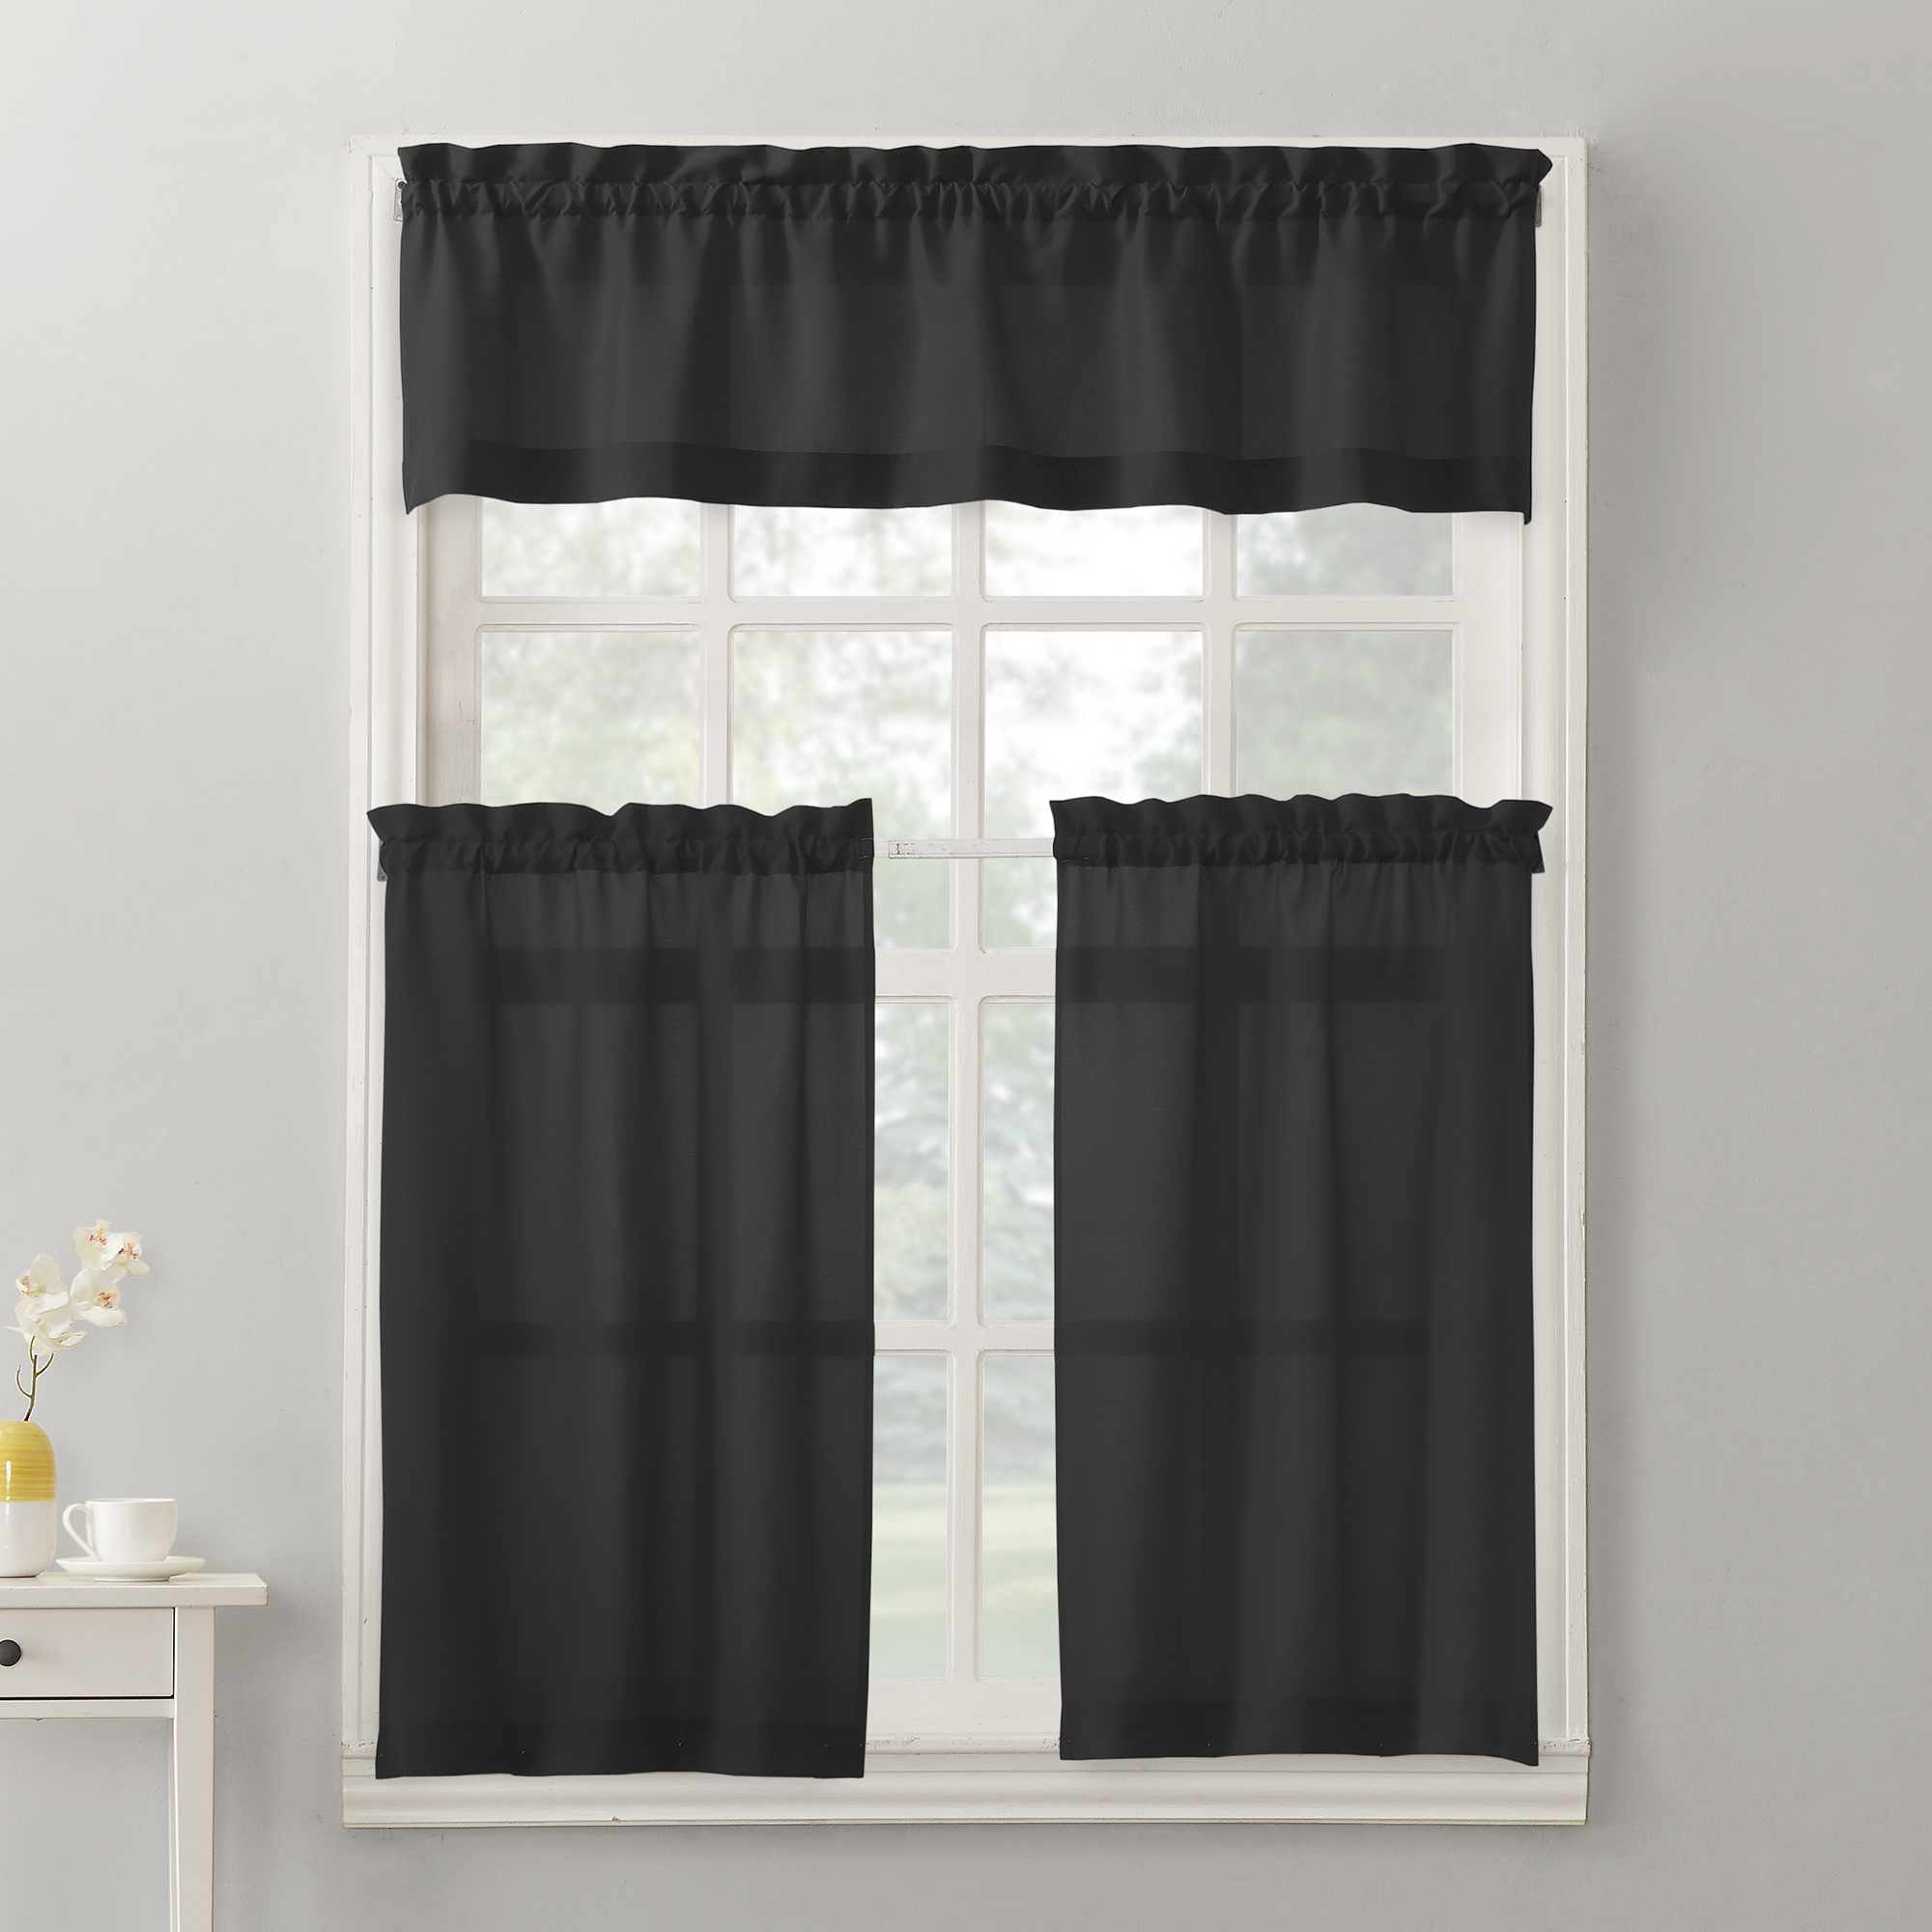 Popular Window Curtain Tier And Valance Sets Pertaining To Mainstays Solid 3 Piece Kitchen Curtain Tier And Valance Set (View 13 of 20)